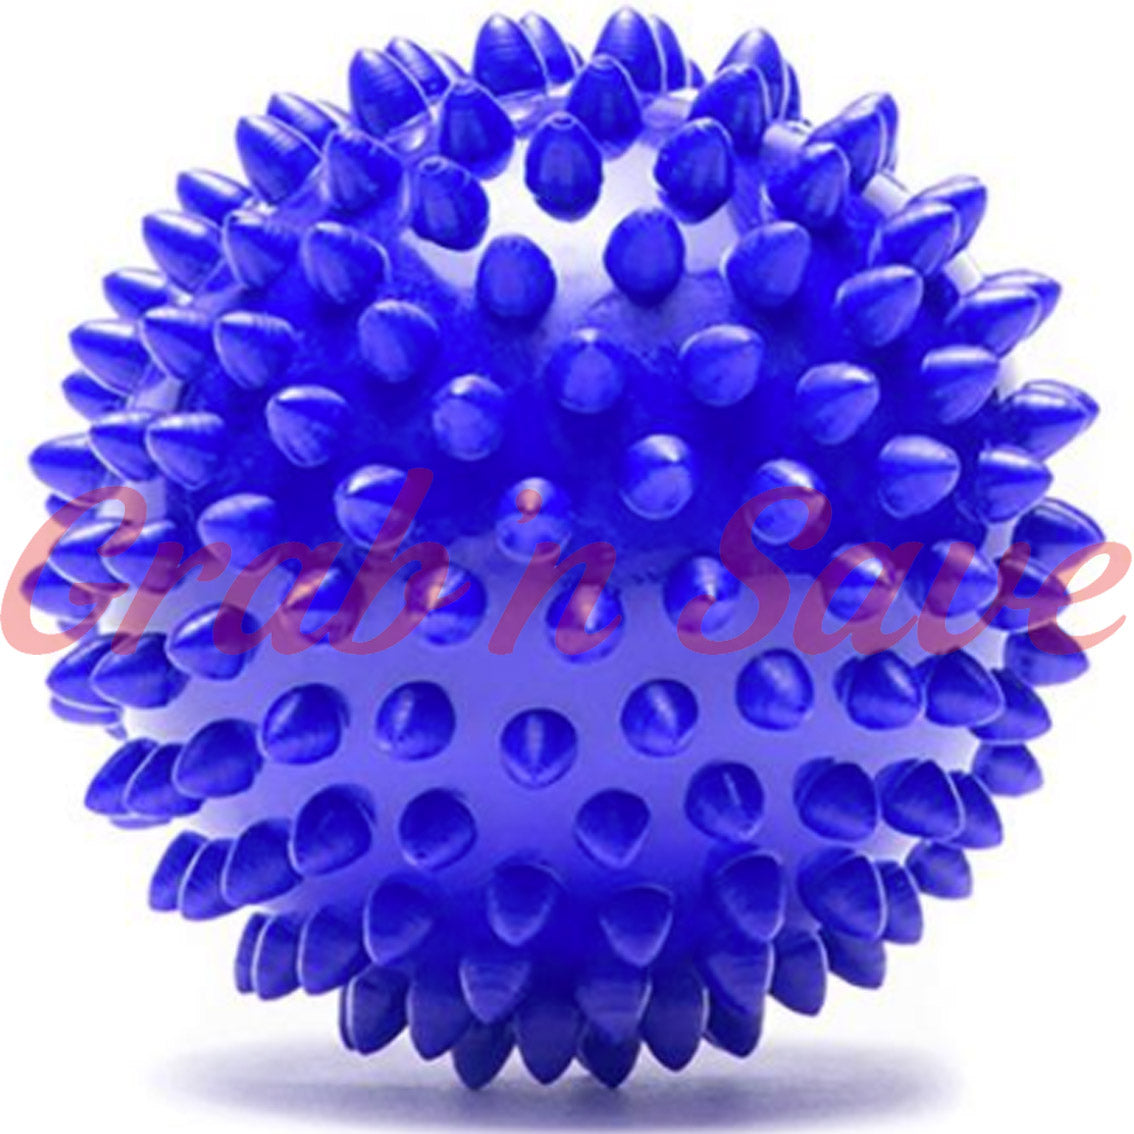 Massage Roller Ball, Spiky Massage Roller, Spiky Massage Ball